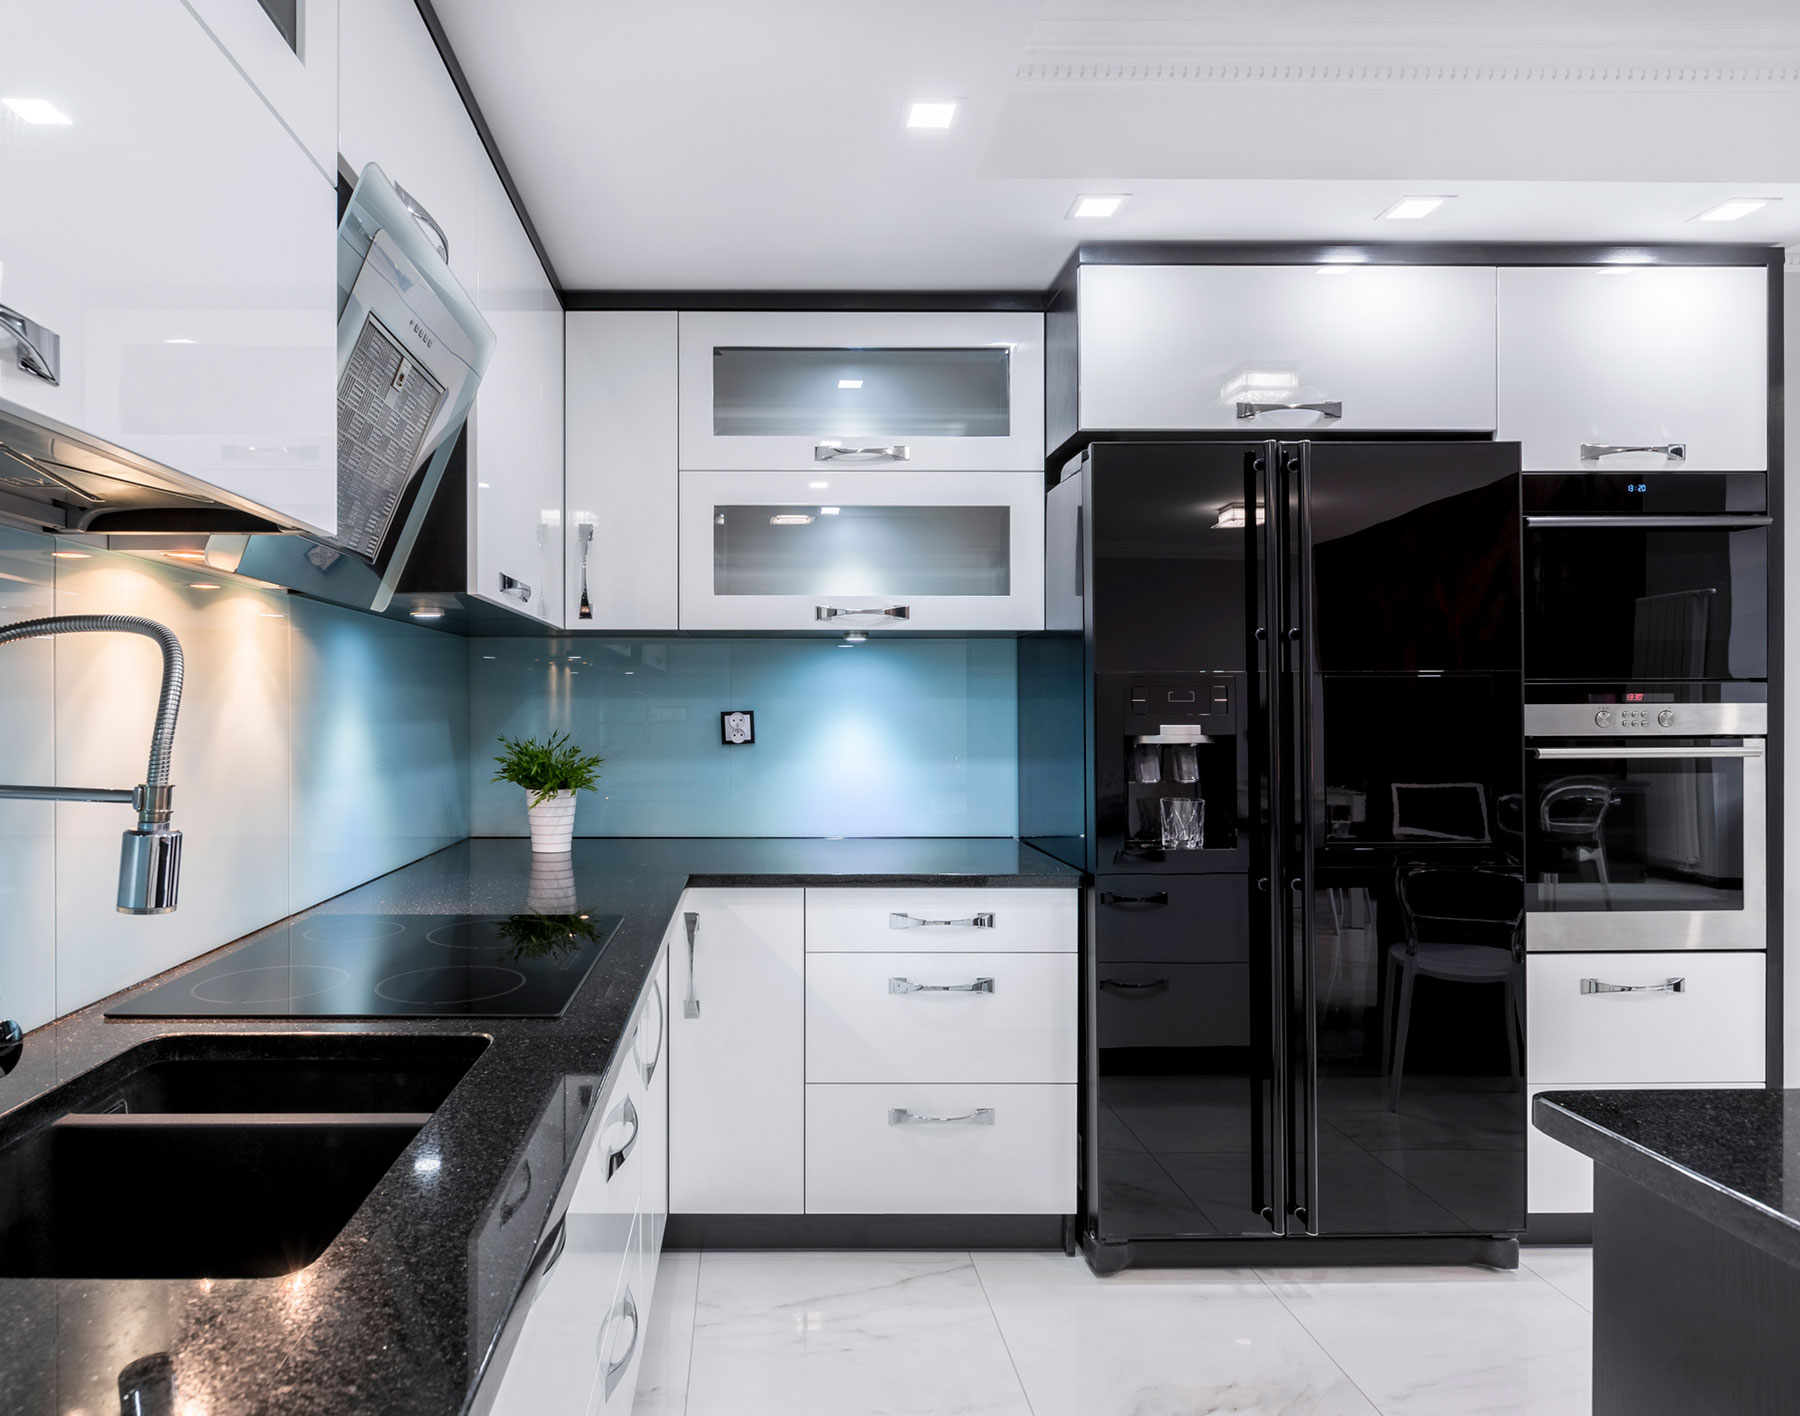 Black Stainless Steel Appliances Are The Hot Kitchen Trend We Ve Been Waiting For Real Simple